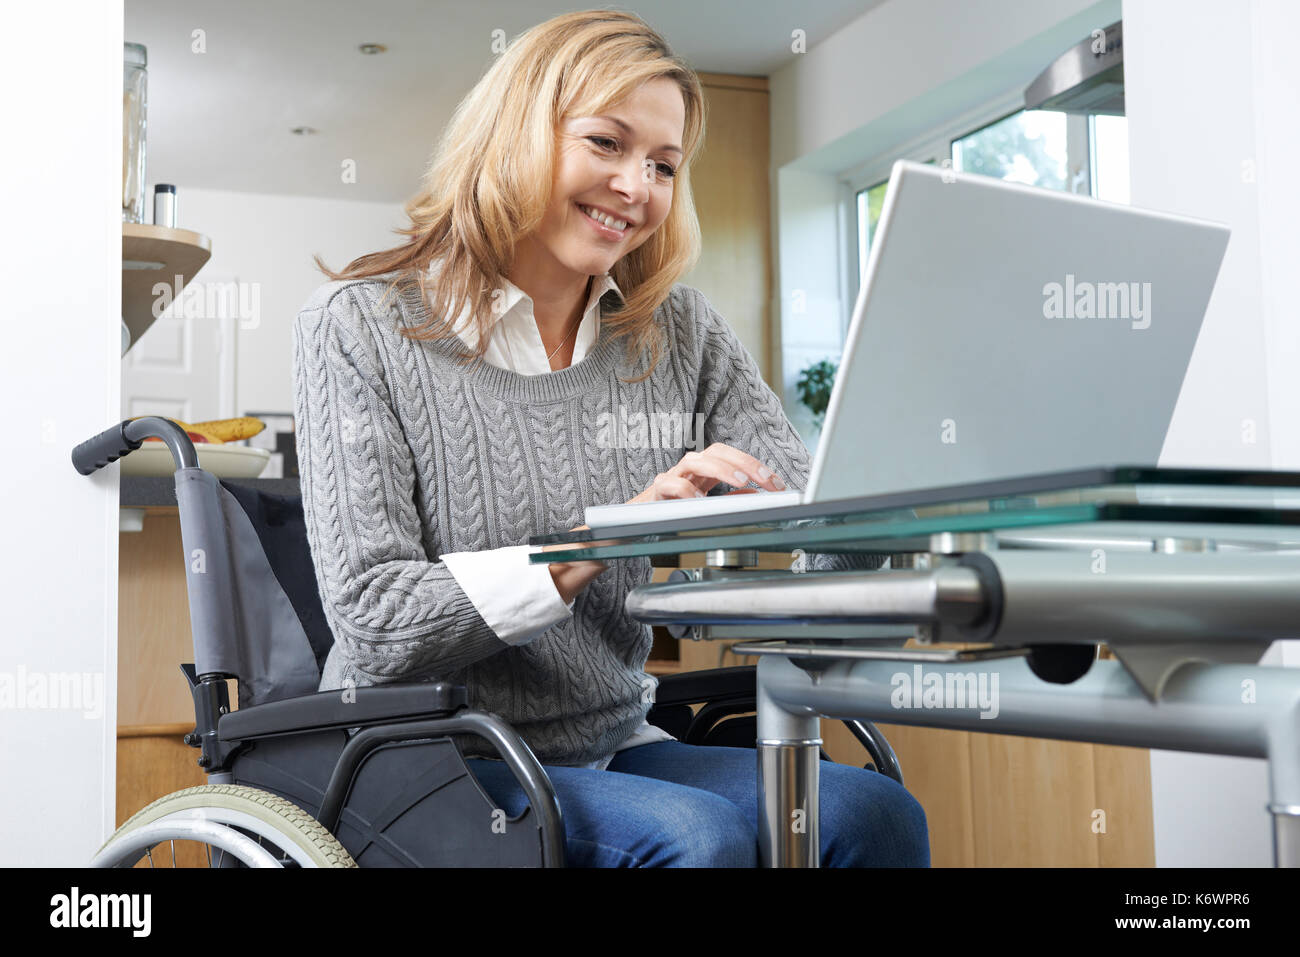 Disabled Woman In Wheelchair Using Laptop At Home - Stock Image